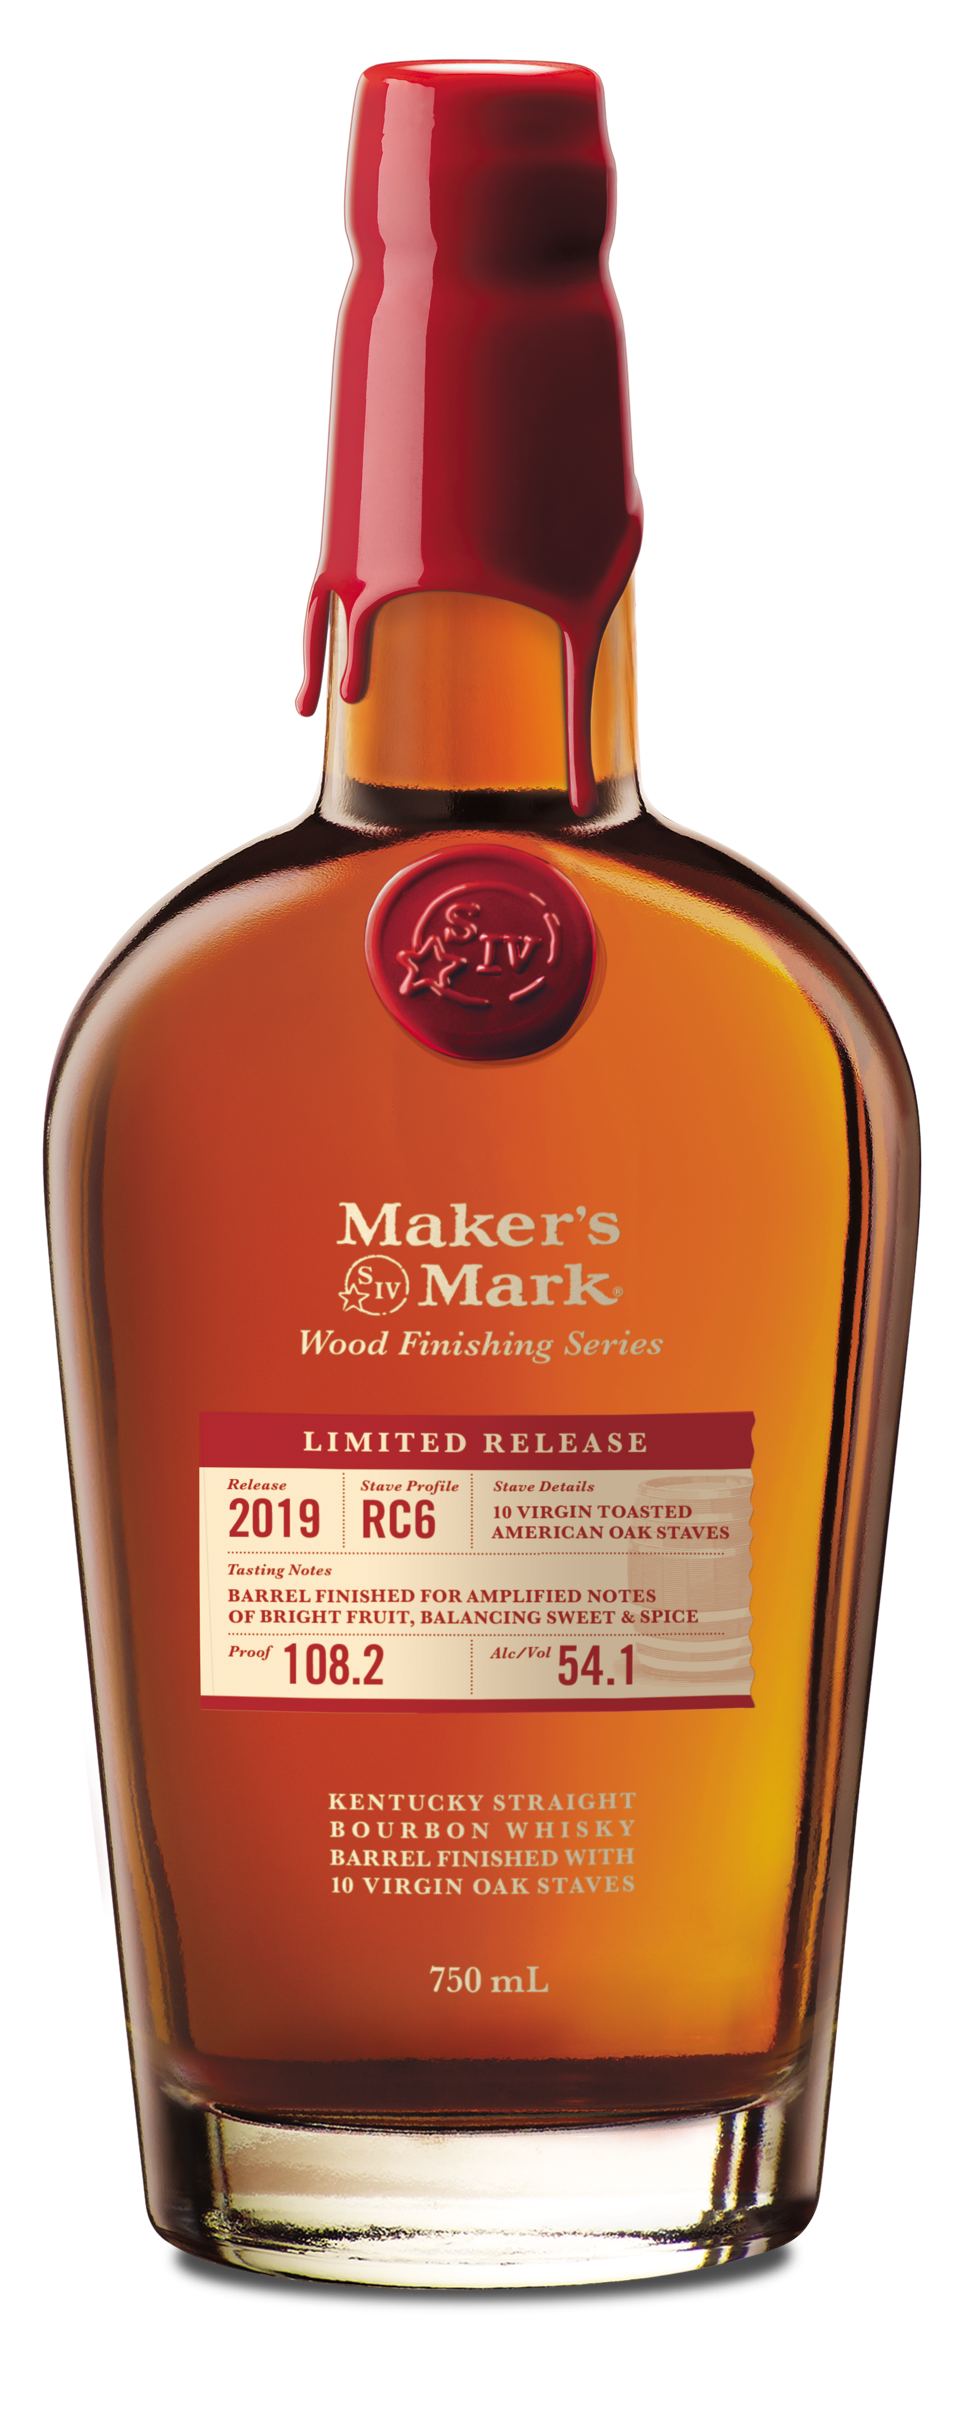 Maker's Mark Releases Its First-Ever Nationally Available Limited-Release Bourbon